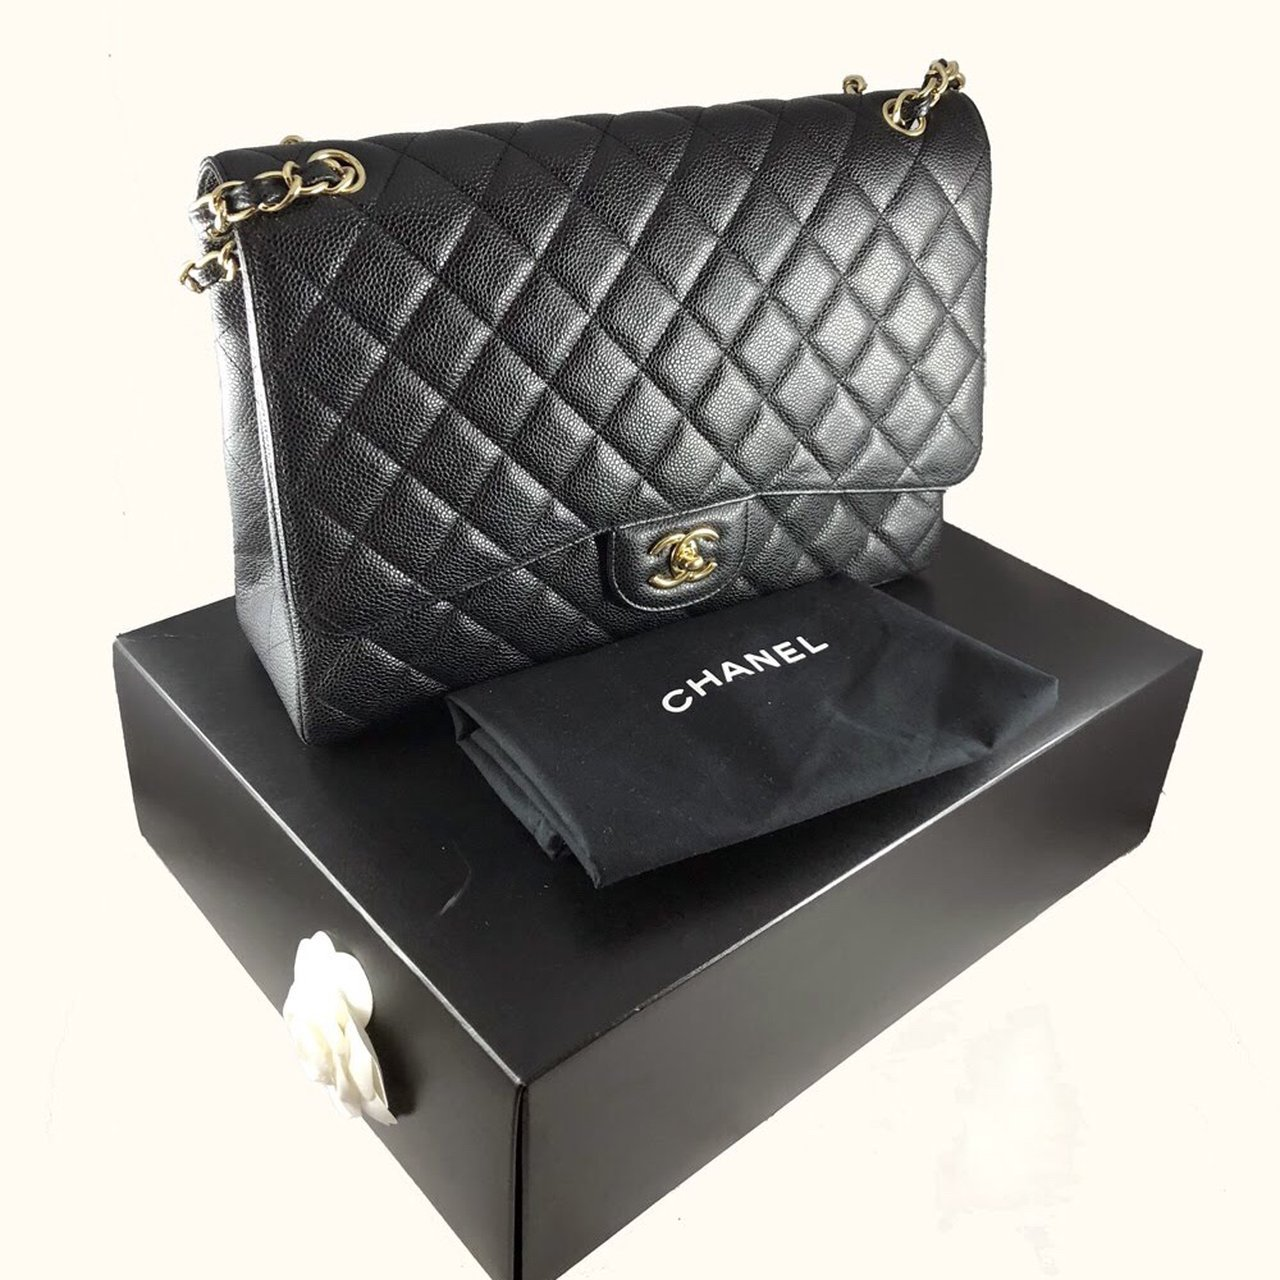 b91accfed155  alldes. 8 months ago. United States.  PRICE TO SELL  Authentic CHANEL maxi  flap bag ...